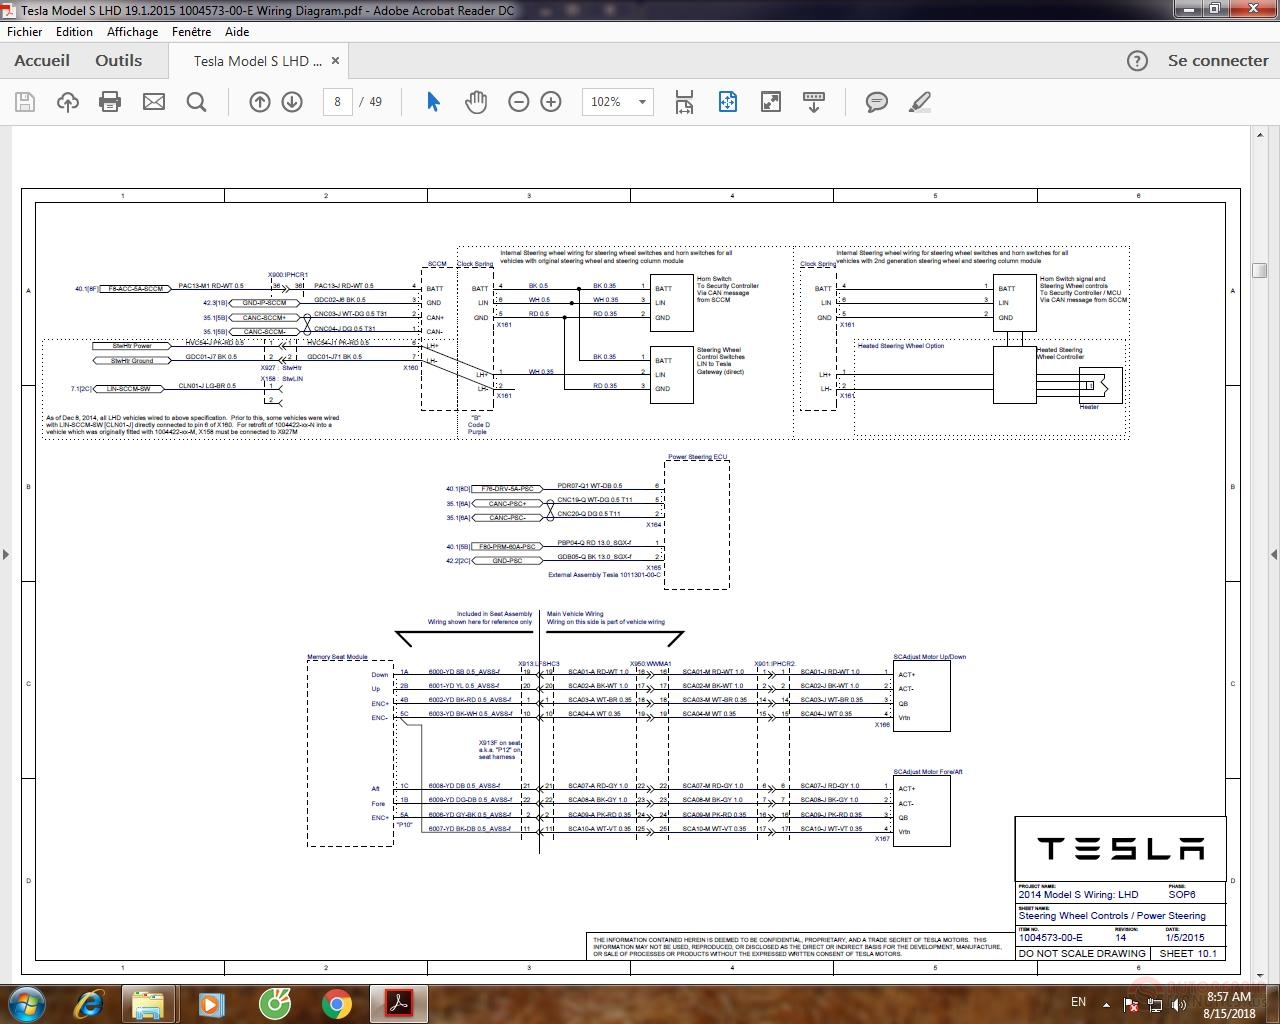 Tesla Model S Lhd 1912015 1004573 00 E Wiring Diagram Auto For